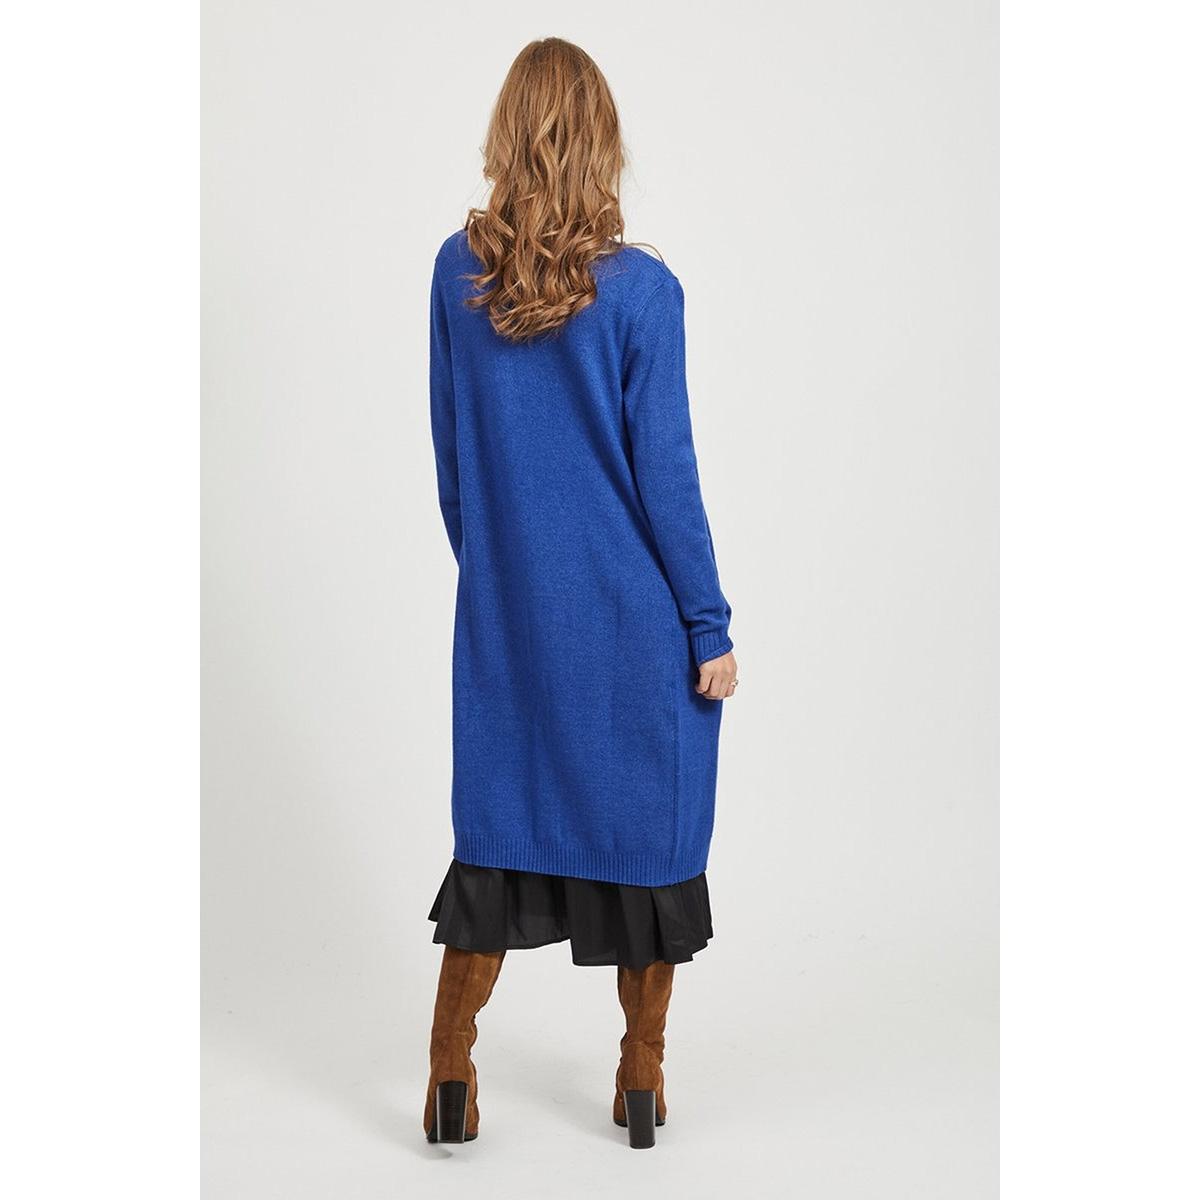 viril l/s long knit cardigan-fav 14043282 vila vest mazarine blue/melange